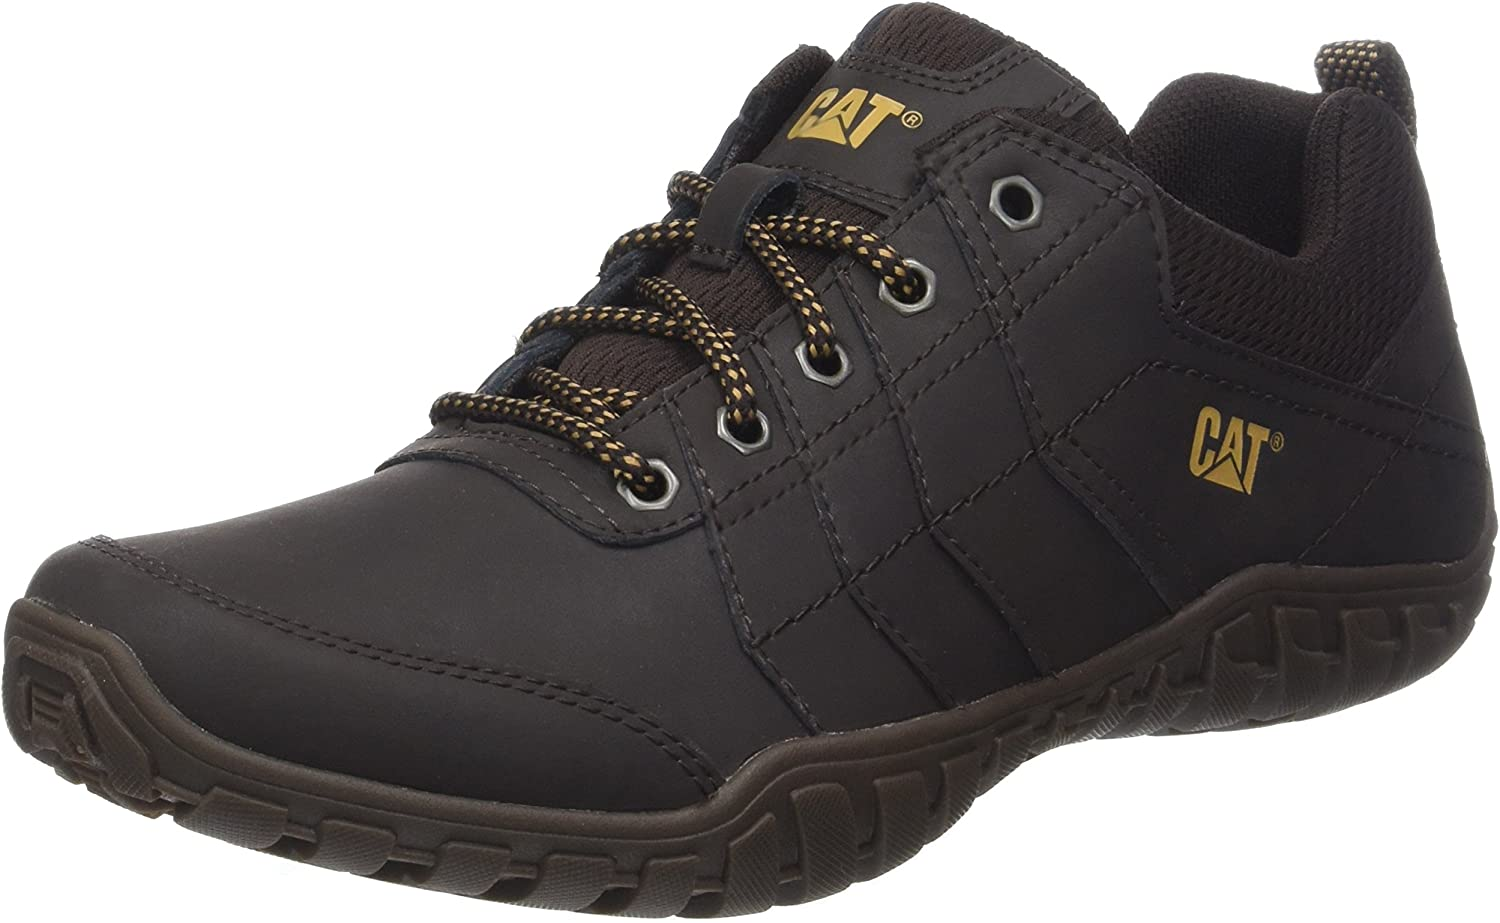 Caterpillar Instruct, Botas Clasicas para Hombre, Marrón (Brown P722310), 41 EU